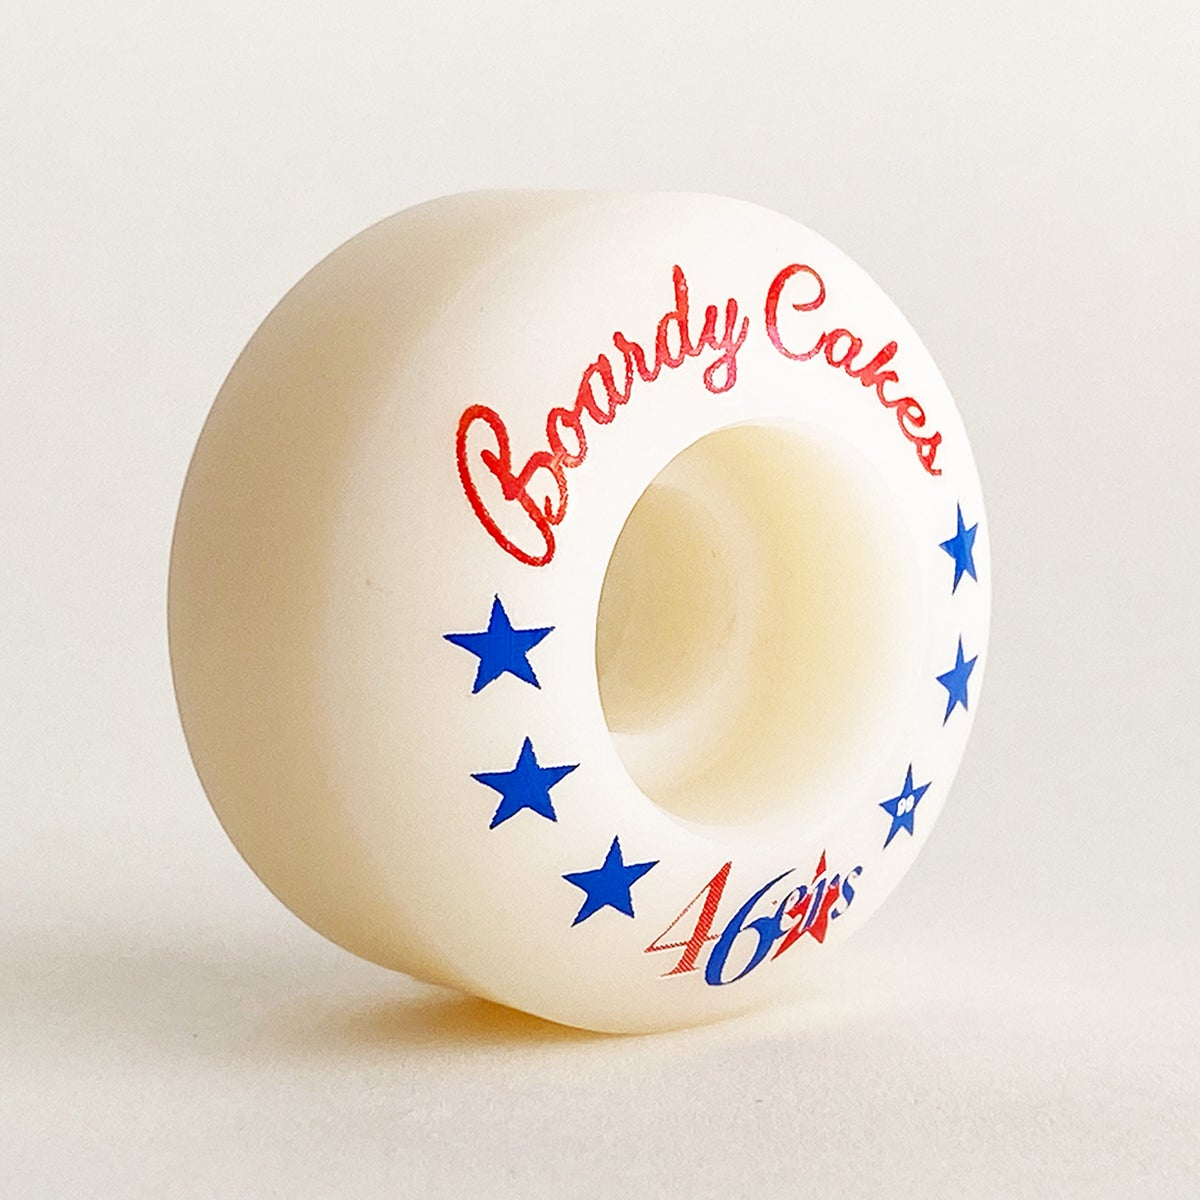 """Image of Boardy Cakes 46mm 99a """"46ers"""""""